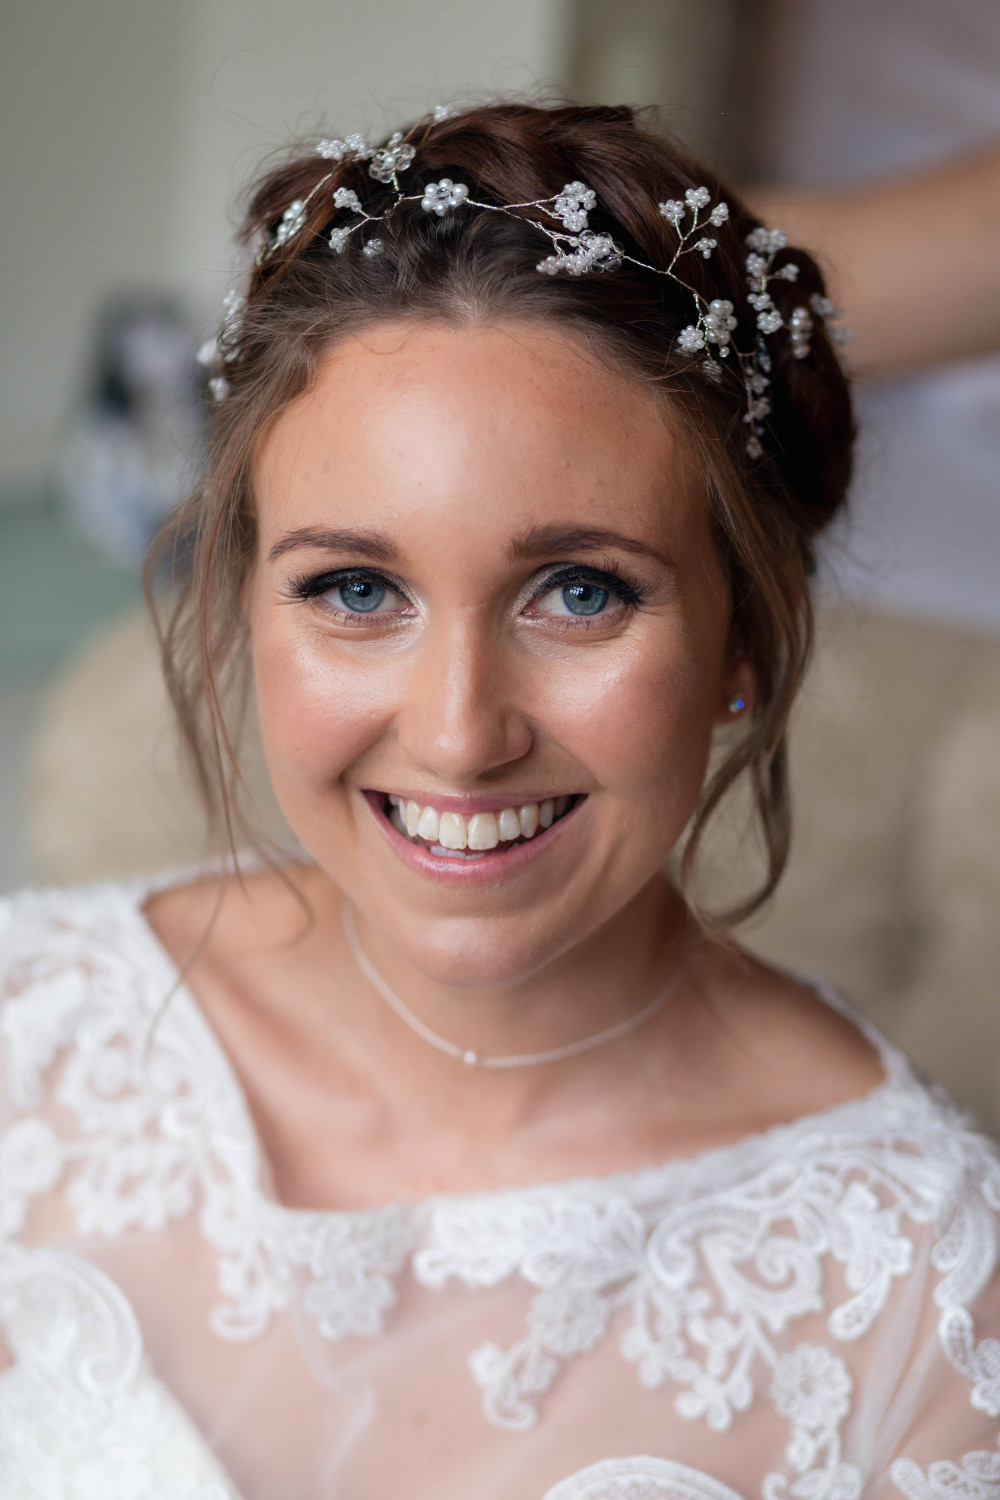 - Make Me Bridal Artist: SJB Hair and Makeup. Photography by: Sarah Capon Photography. #bridalhairstylist #bridalhairandmakeup #bridalhairup #bridalhairandmakeup #kentwedding #kenthairstylist #kentmakeupartist #weddingdayhair #weddingdaymakeup